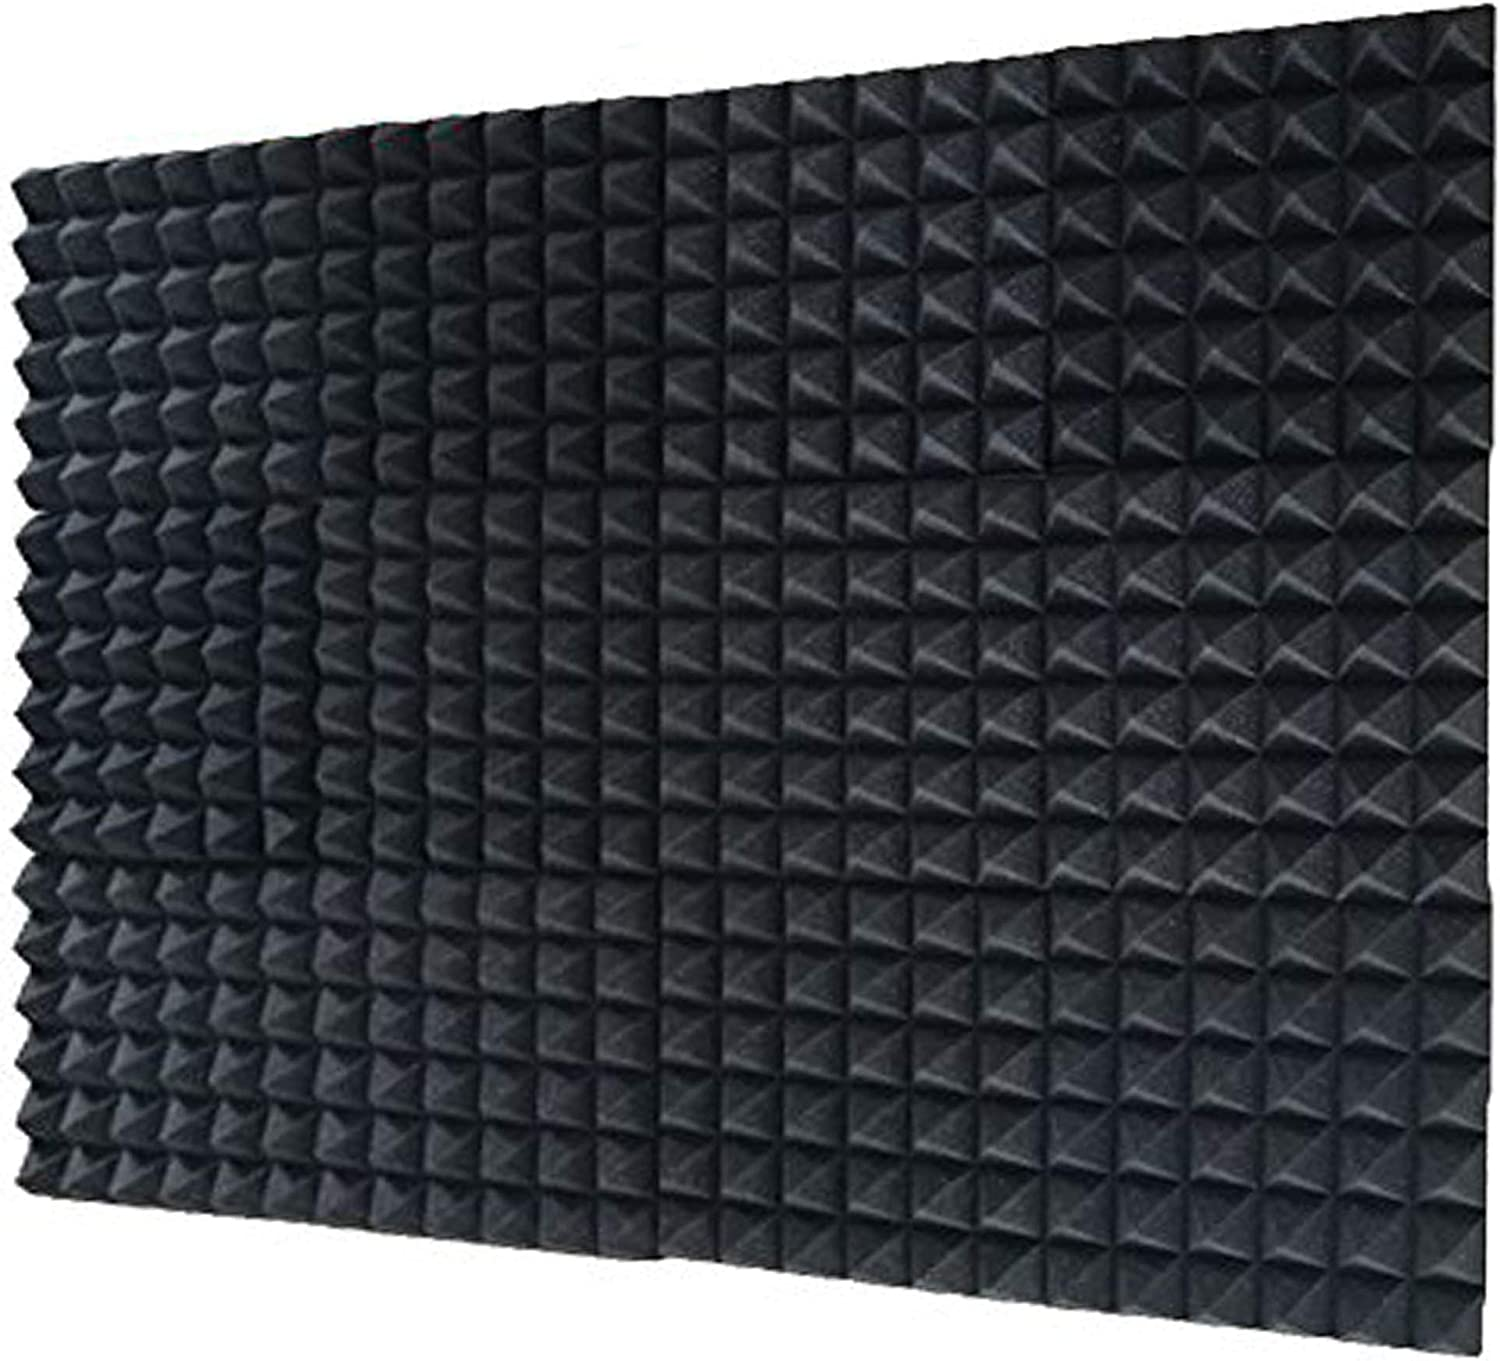 "12 Pack Set Acoustic Foam Panels, Studio Wedge Tiles, 2"" X 12"" X 12"" Acoustic Foam Sound Absorption Pyramid Studio Treatment Wall Panels"